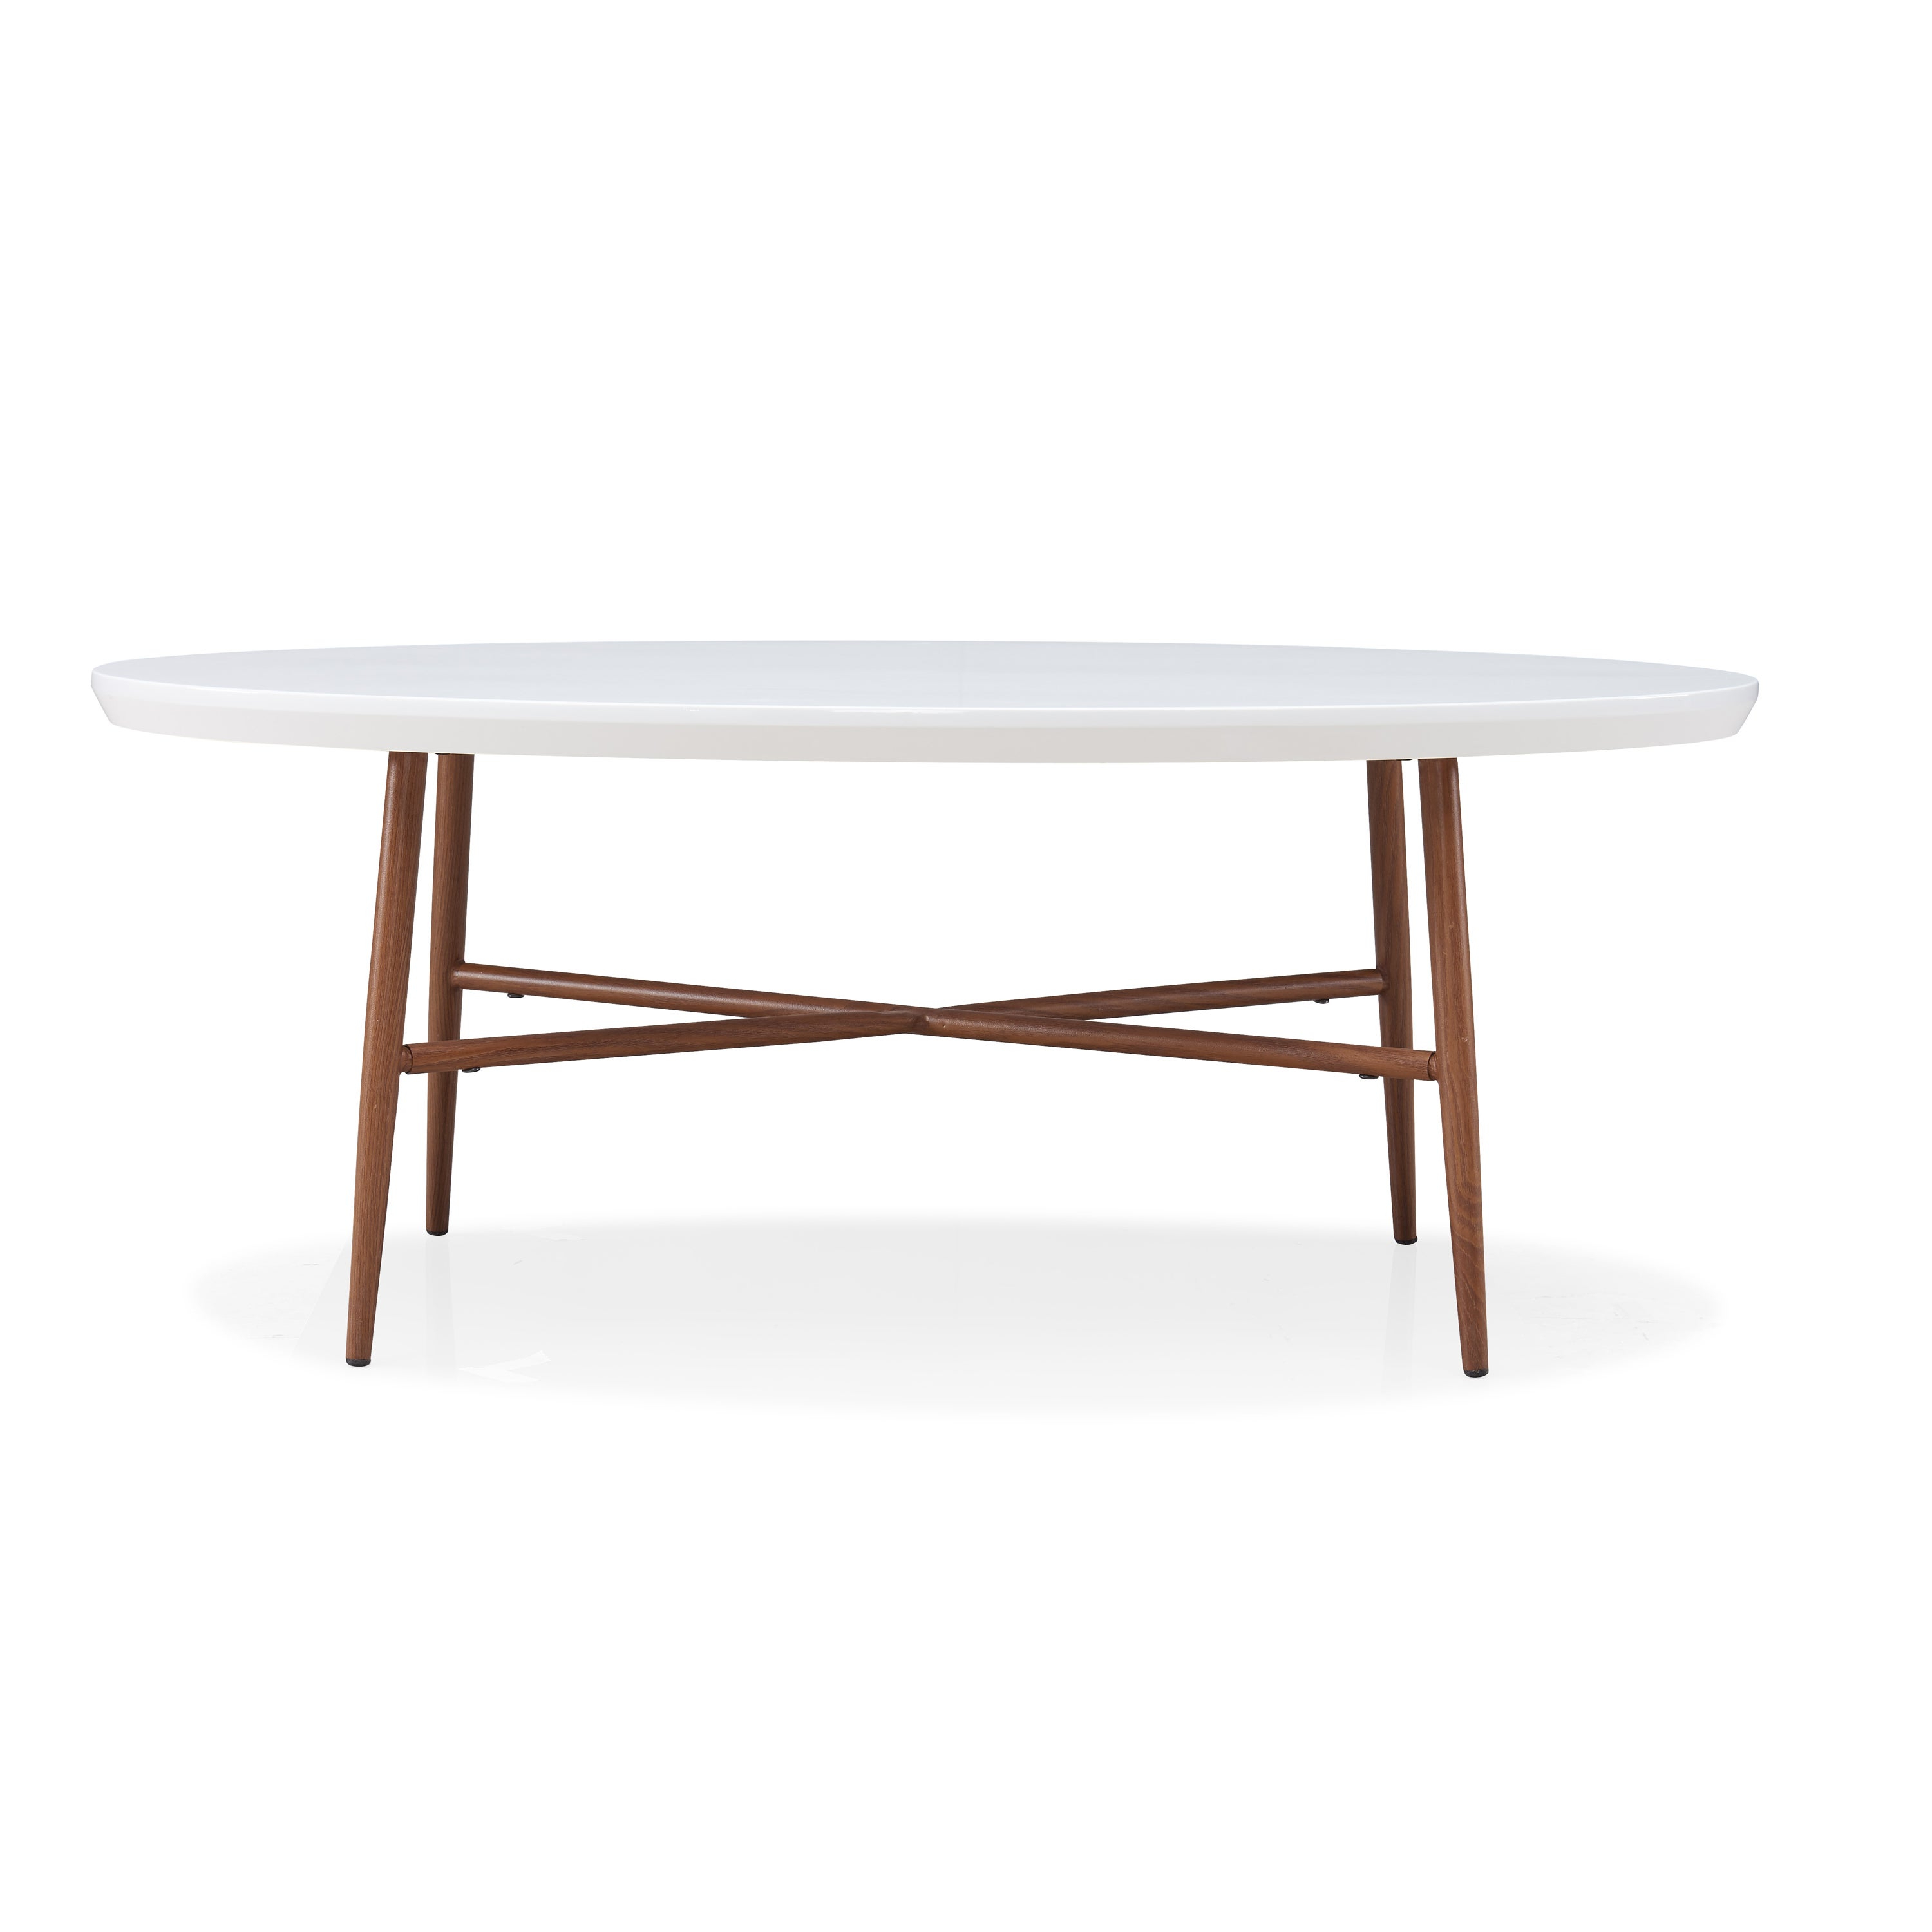 Handy Living Miami White Oval Coffee Table With Brown Metal Legs Regarding Well Liked Handy Living Miami White Oval Coffee Tables With Brown Metal Legs (View 2 of 20)